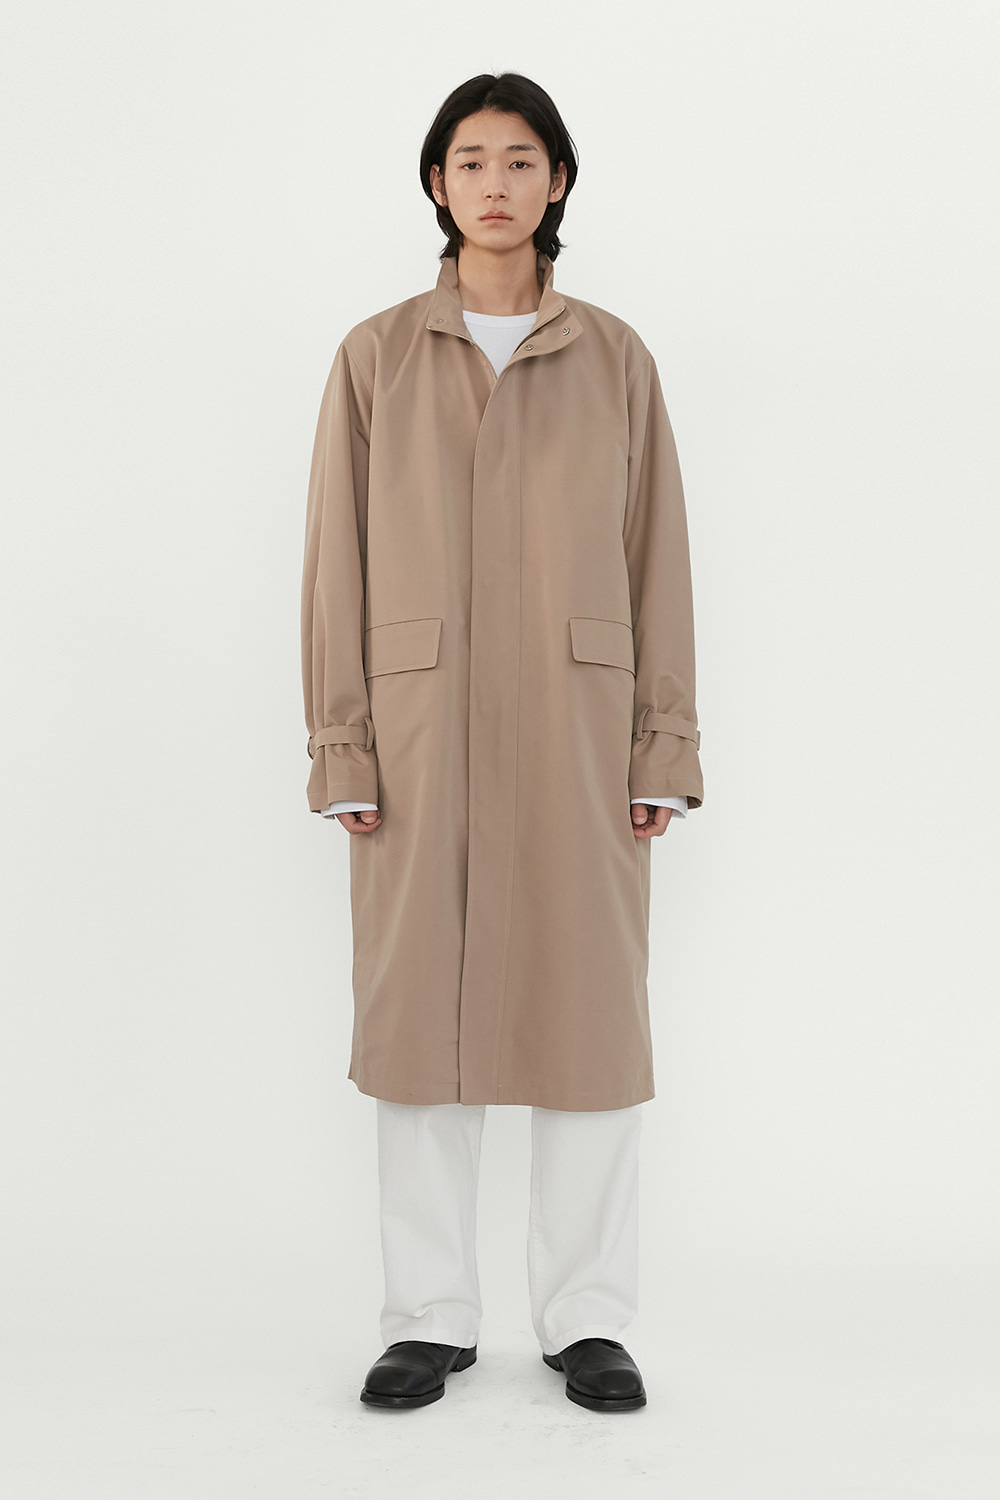 Mods Coat Men [Dark Beige]